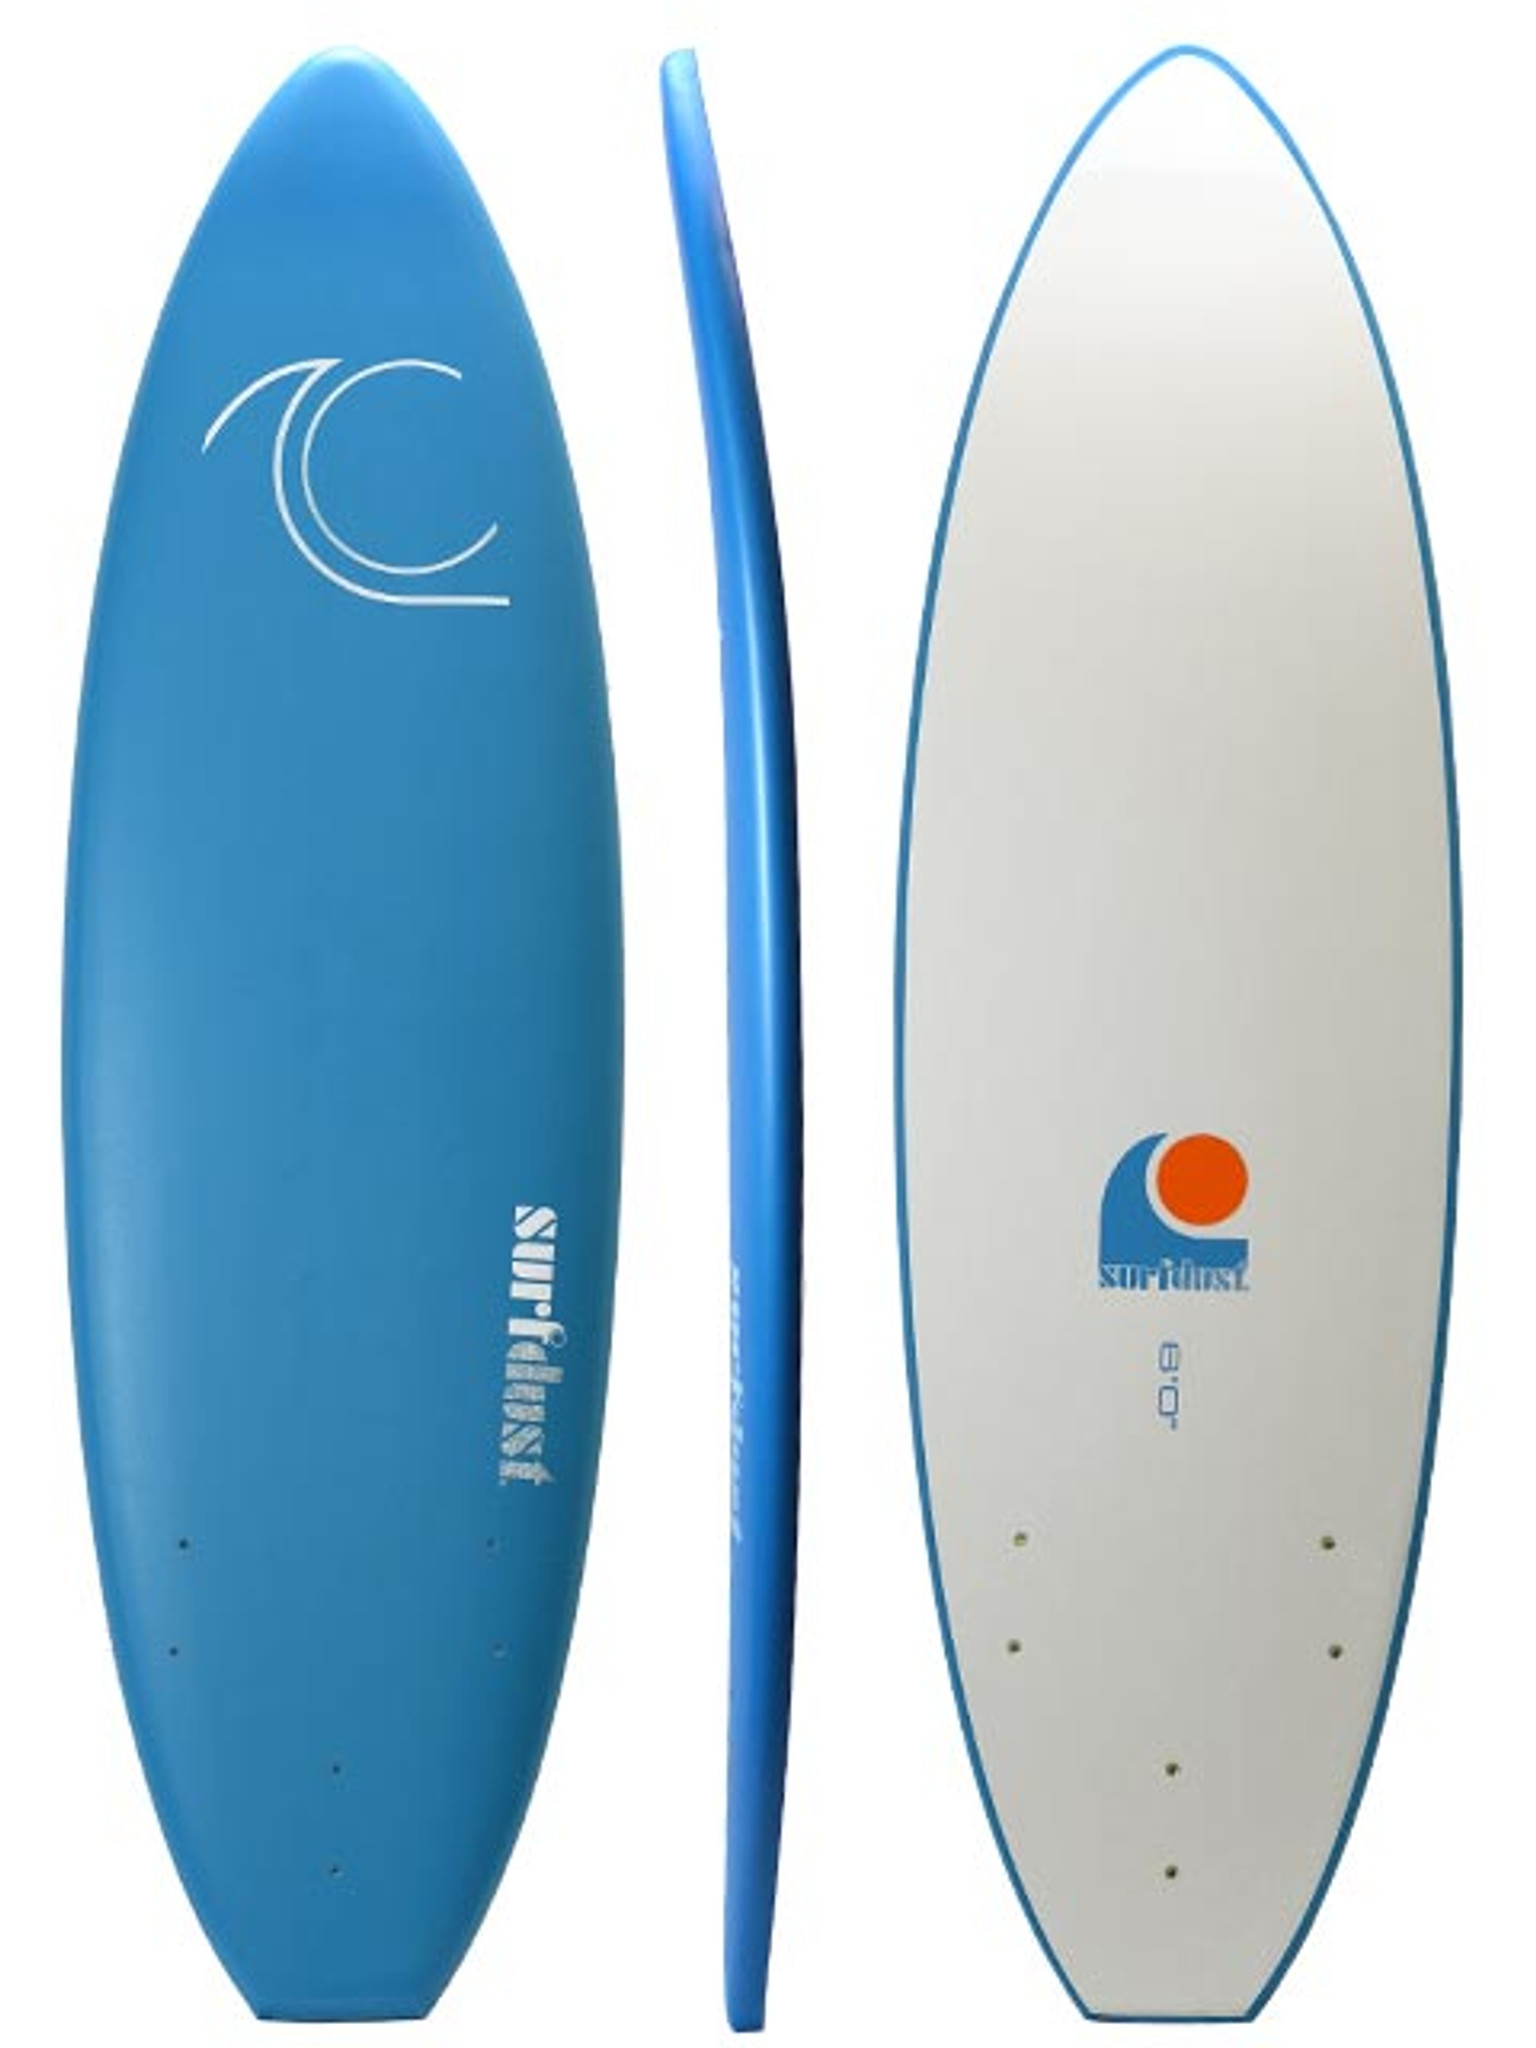 SURFDUST - Intro 6ft Soft Surfboard - Beginners Surfing